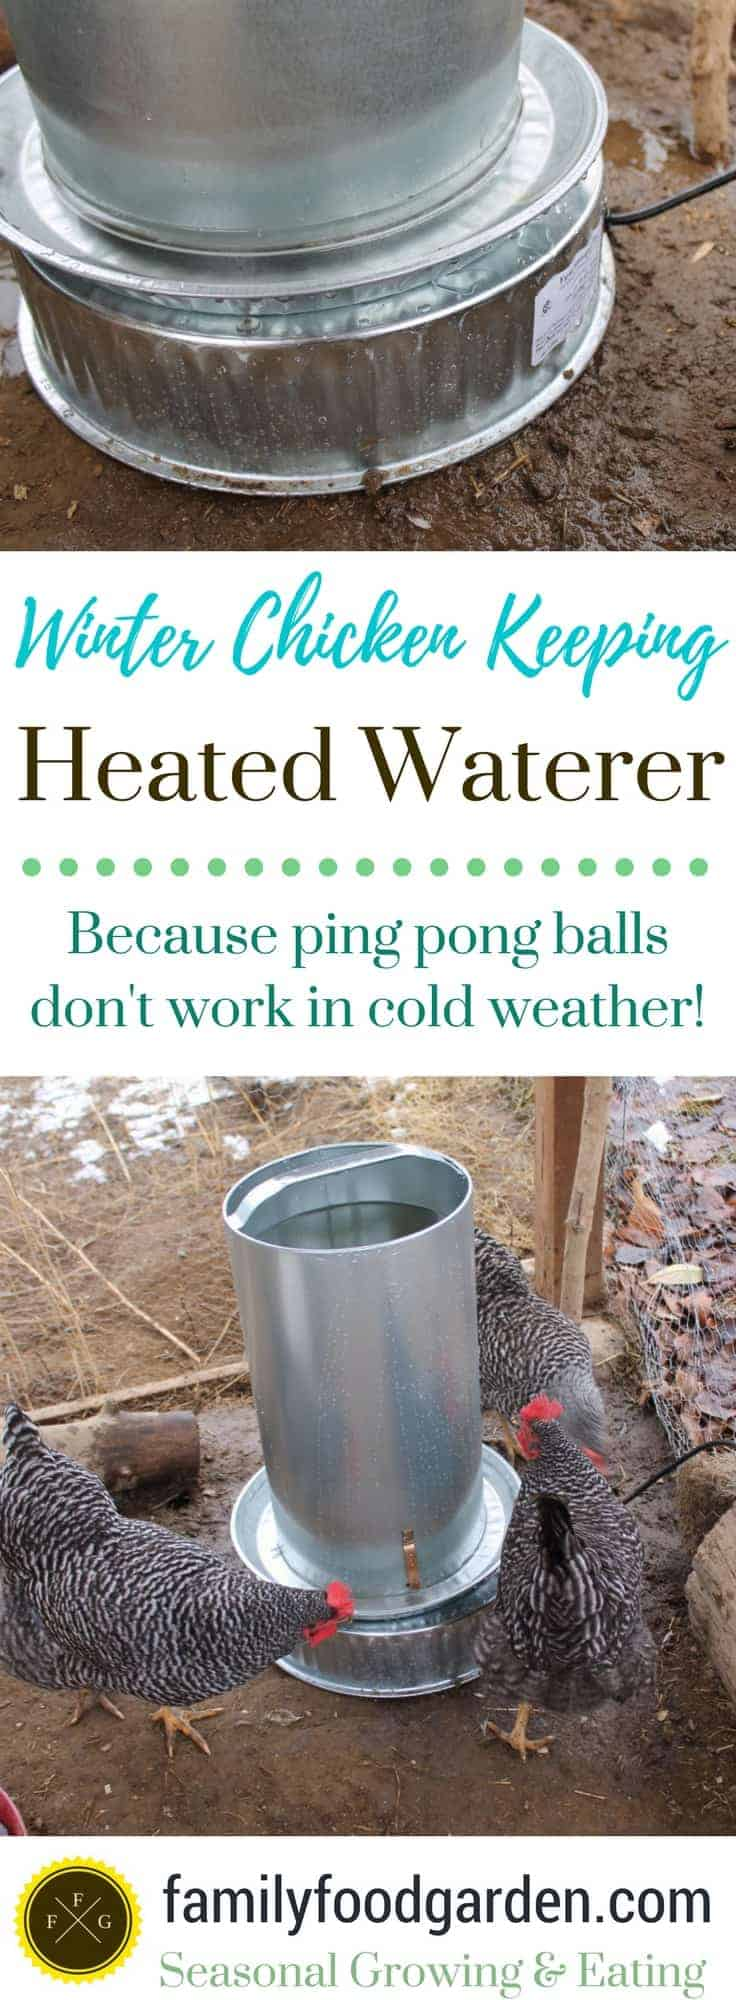 Using a heated chicken waterer for the winter months